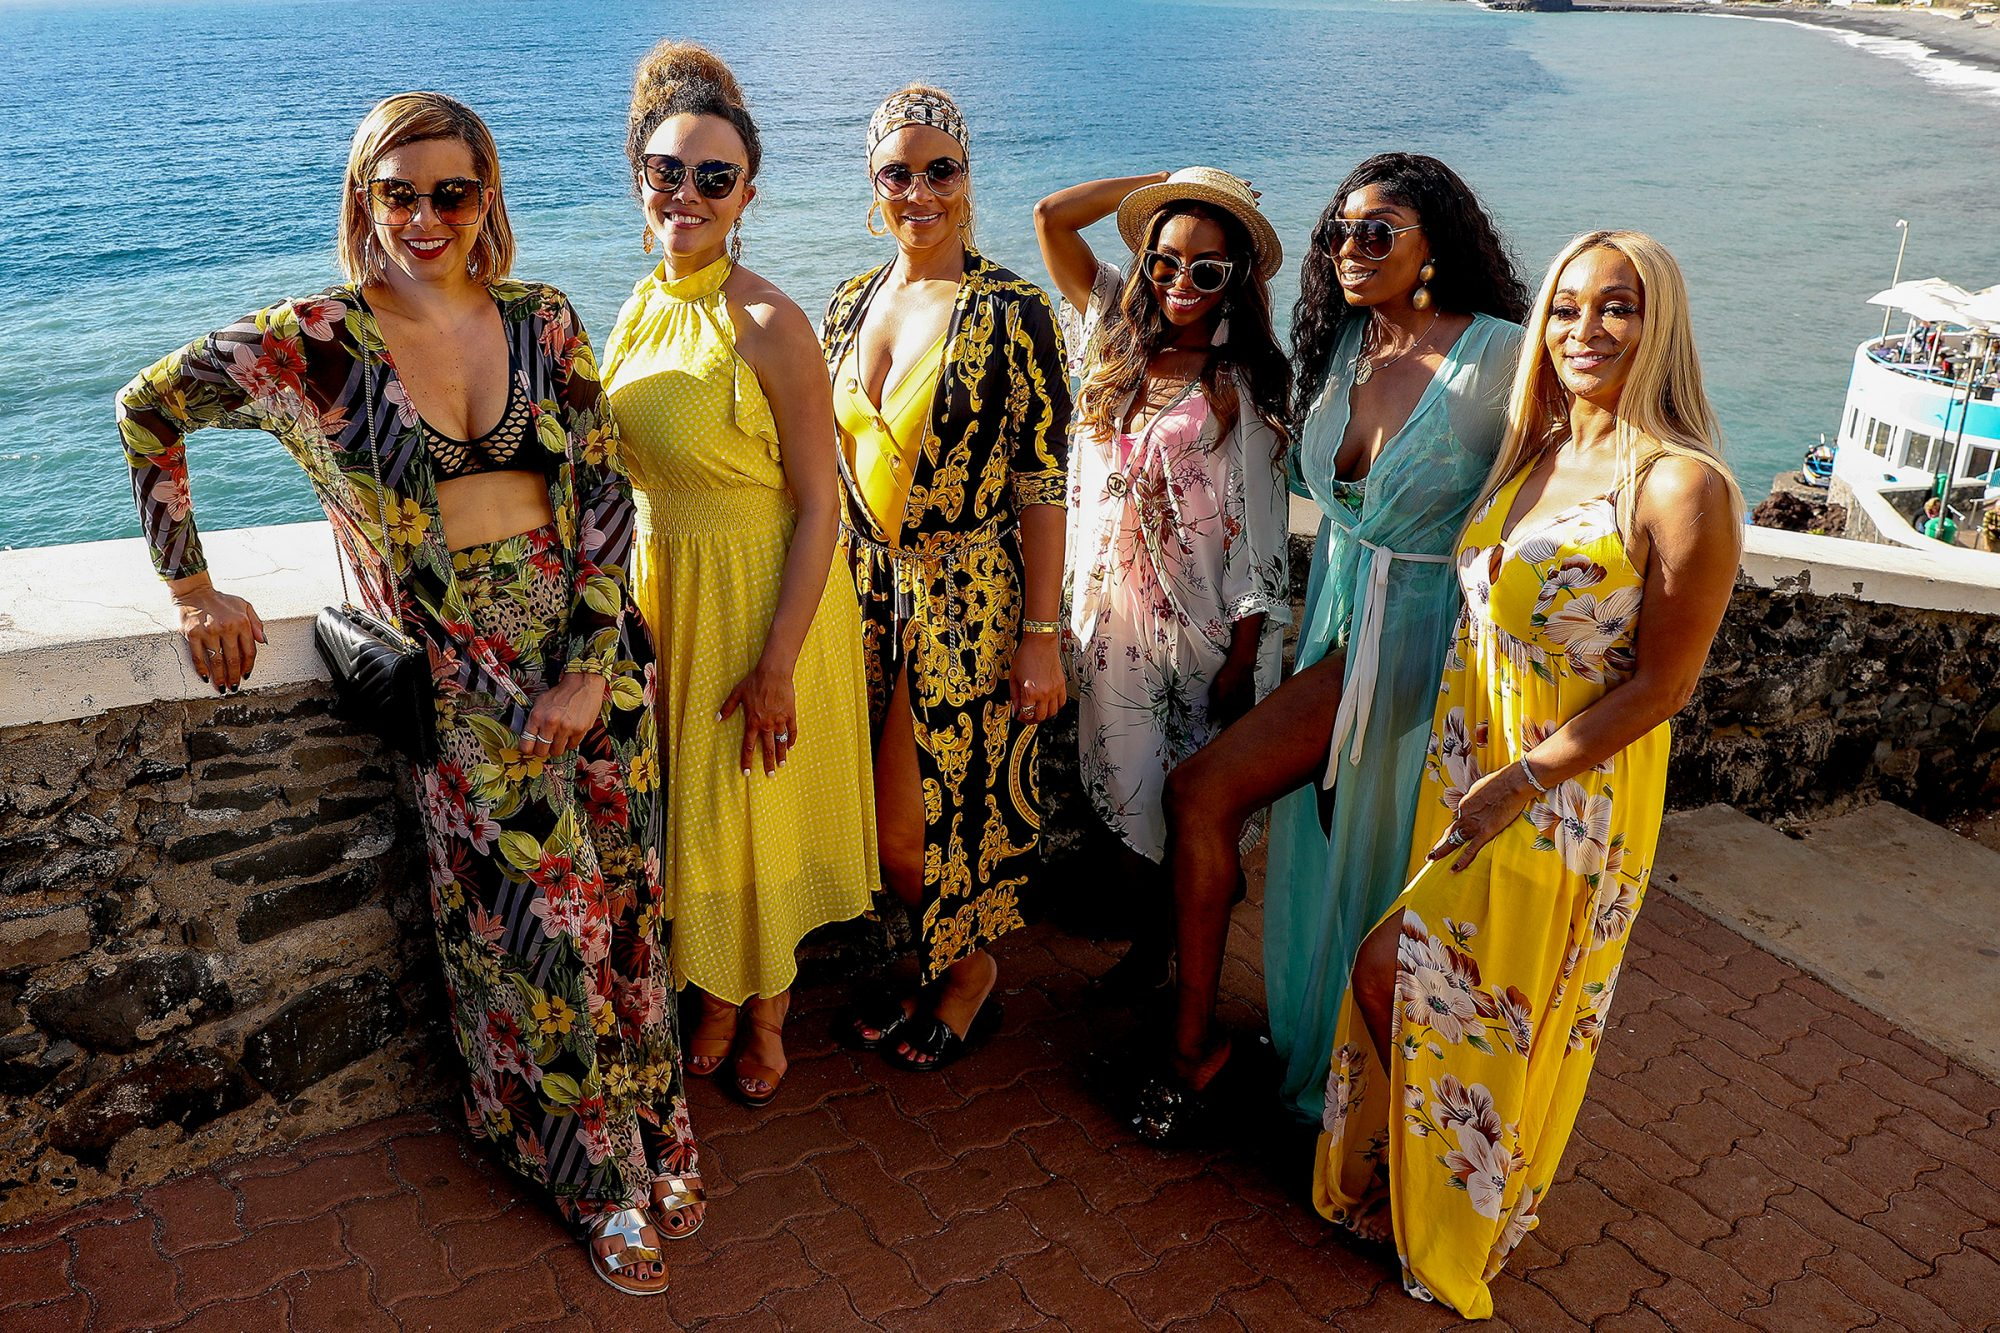 THE REAL HOUSEWIVES OF POTOMAC -- Pictured: (l-r) Robyn Dixon, Ashley Darby, Gizelle Bryant, Candiace Dillard, Wendy Osefo, Karen Huger